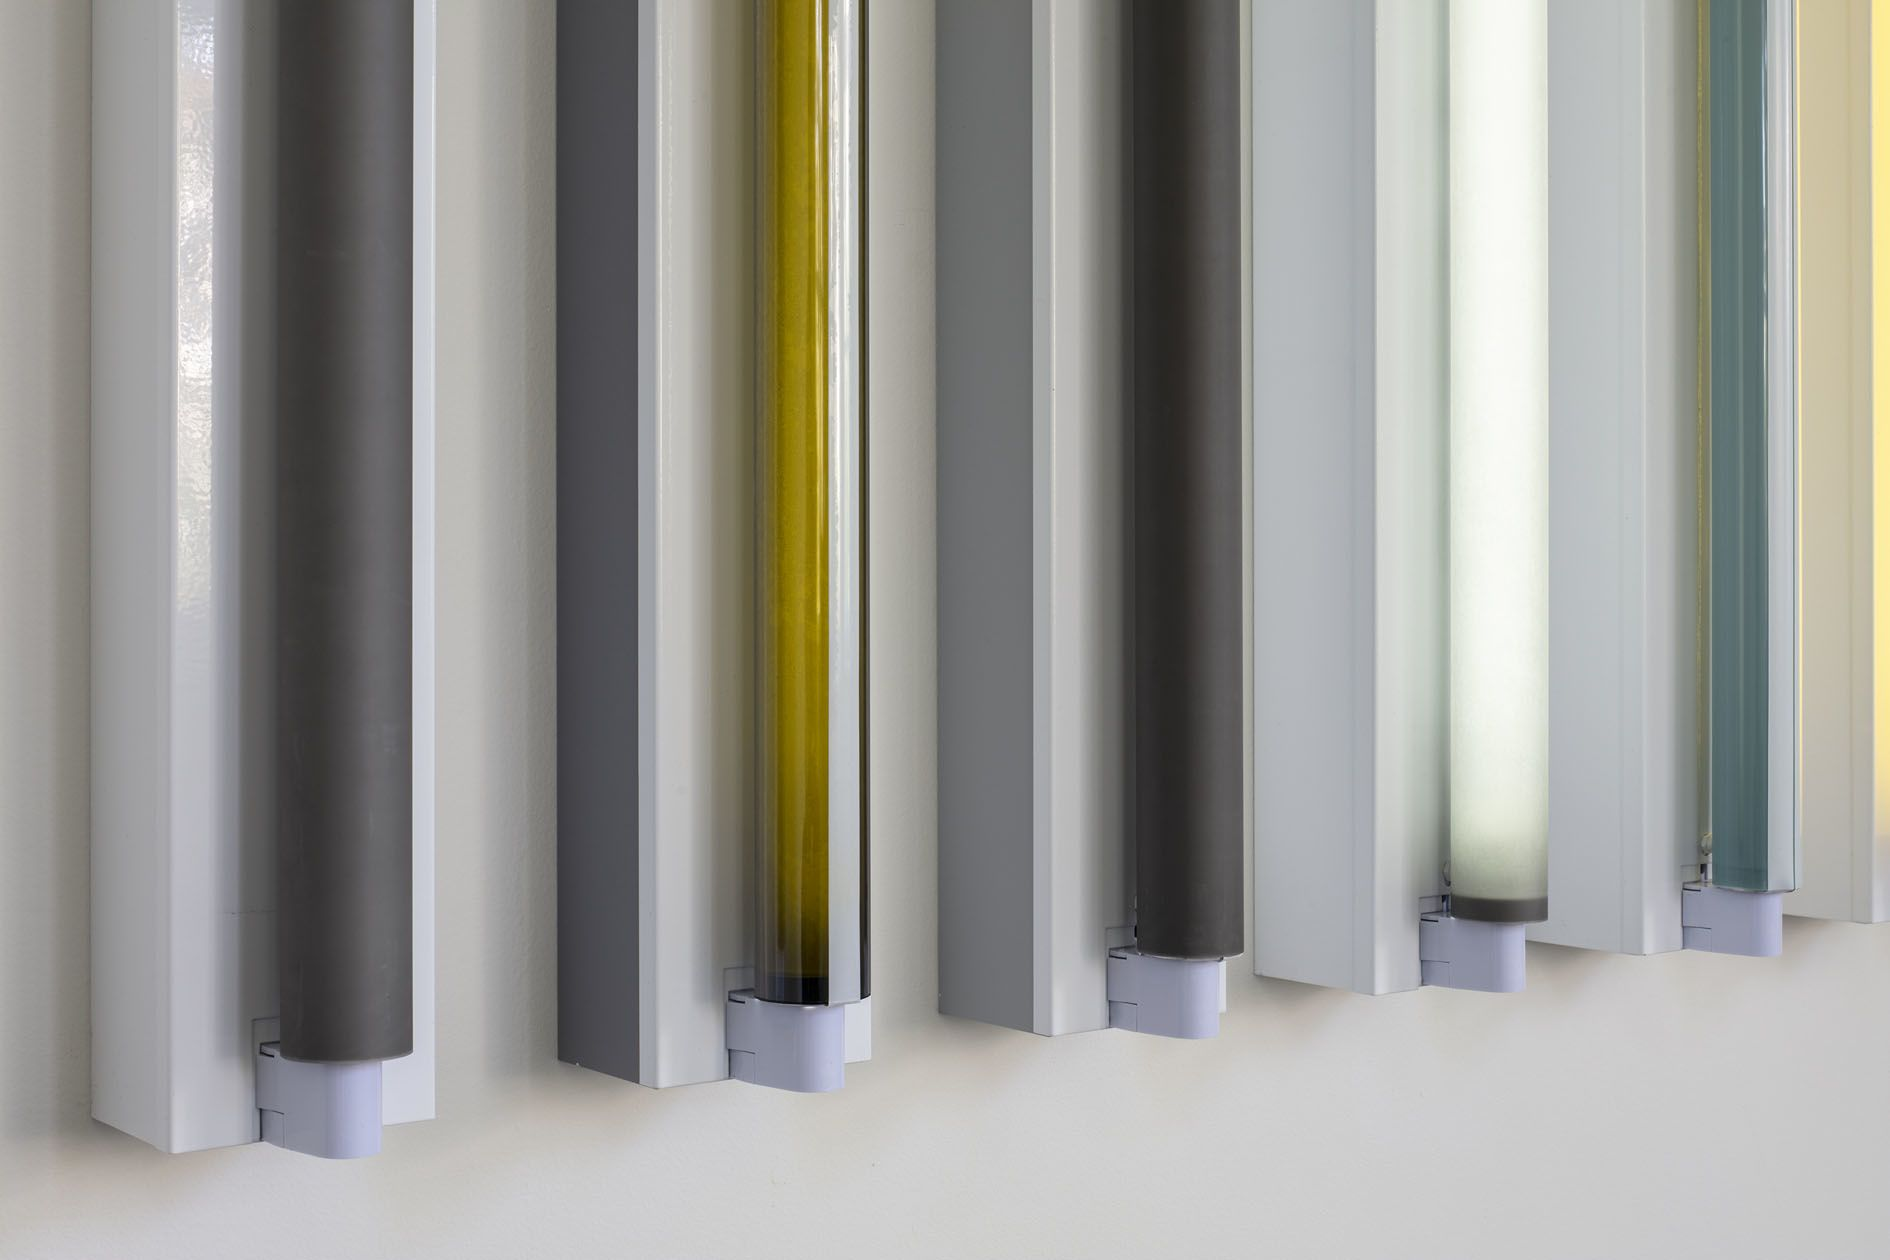 Robert Irwin – Robert Irwin – Berlin